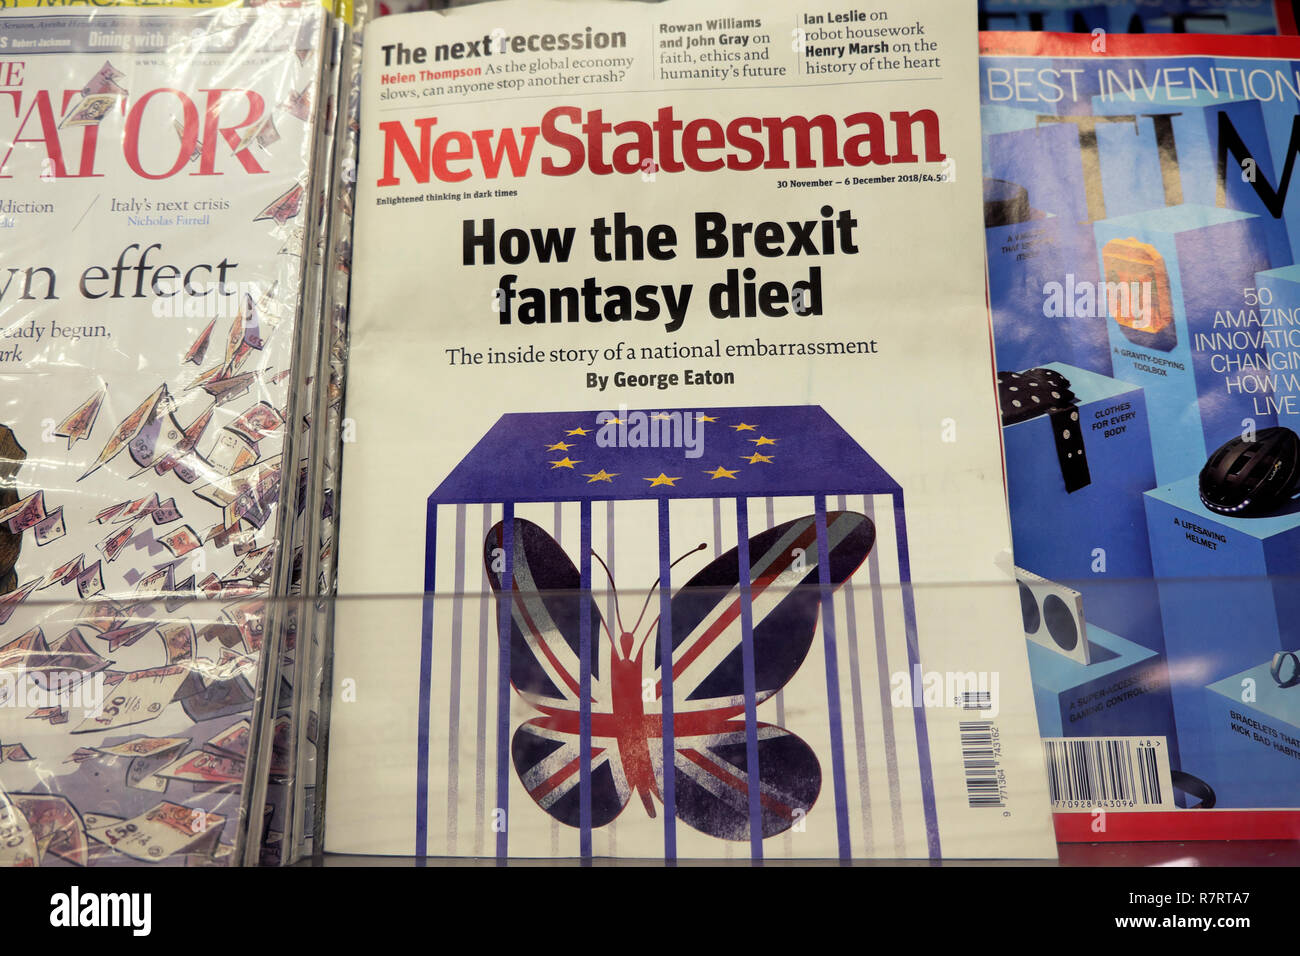 """New Statesman """"How the Brexit fantasy died"""" front cover on a magazine shelf at a British newsagent shop in London England Stock Photo"""